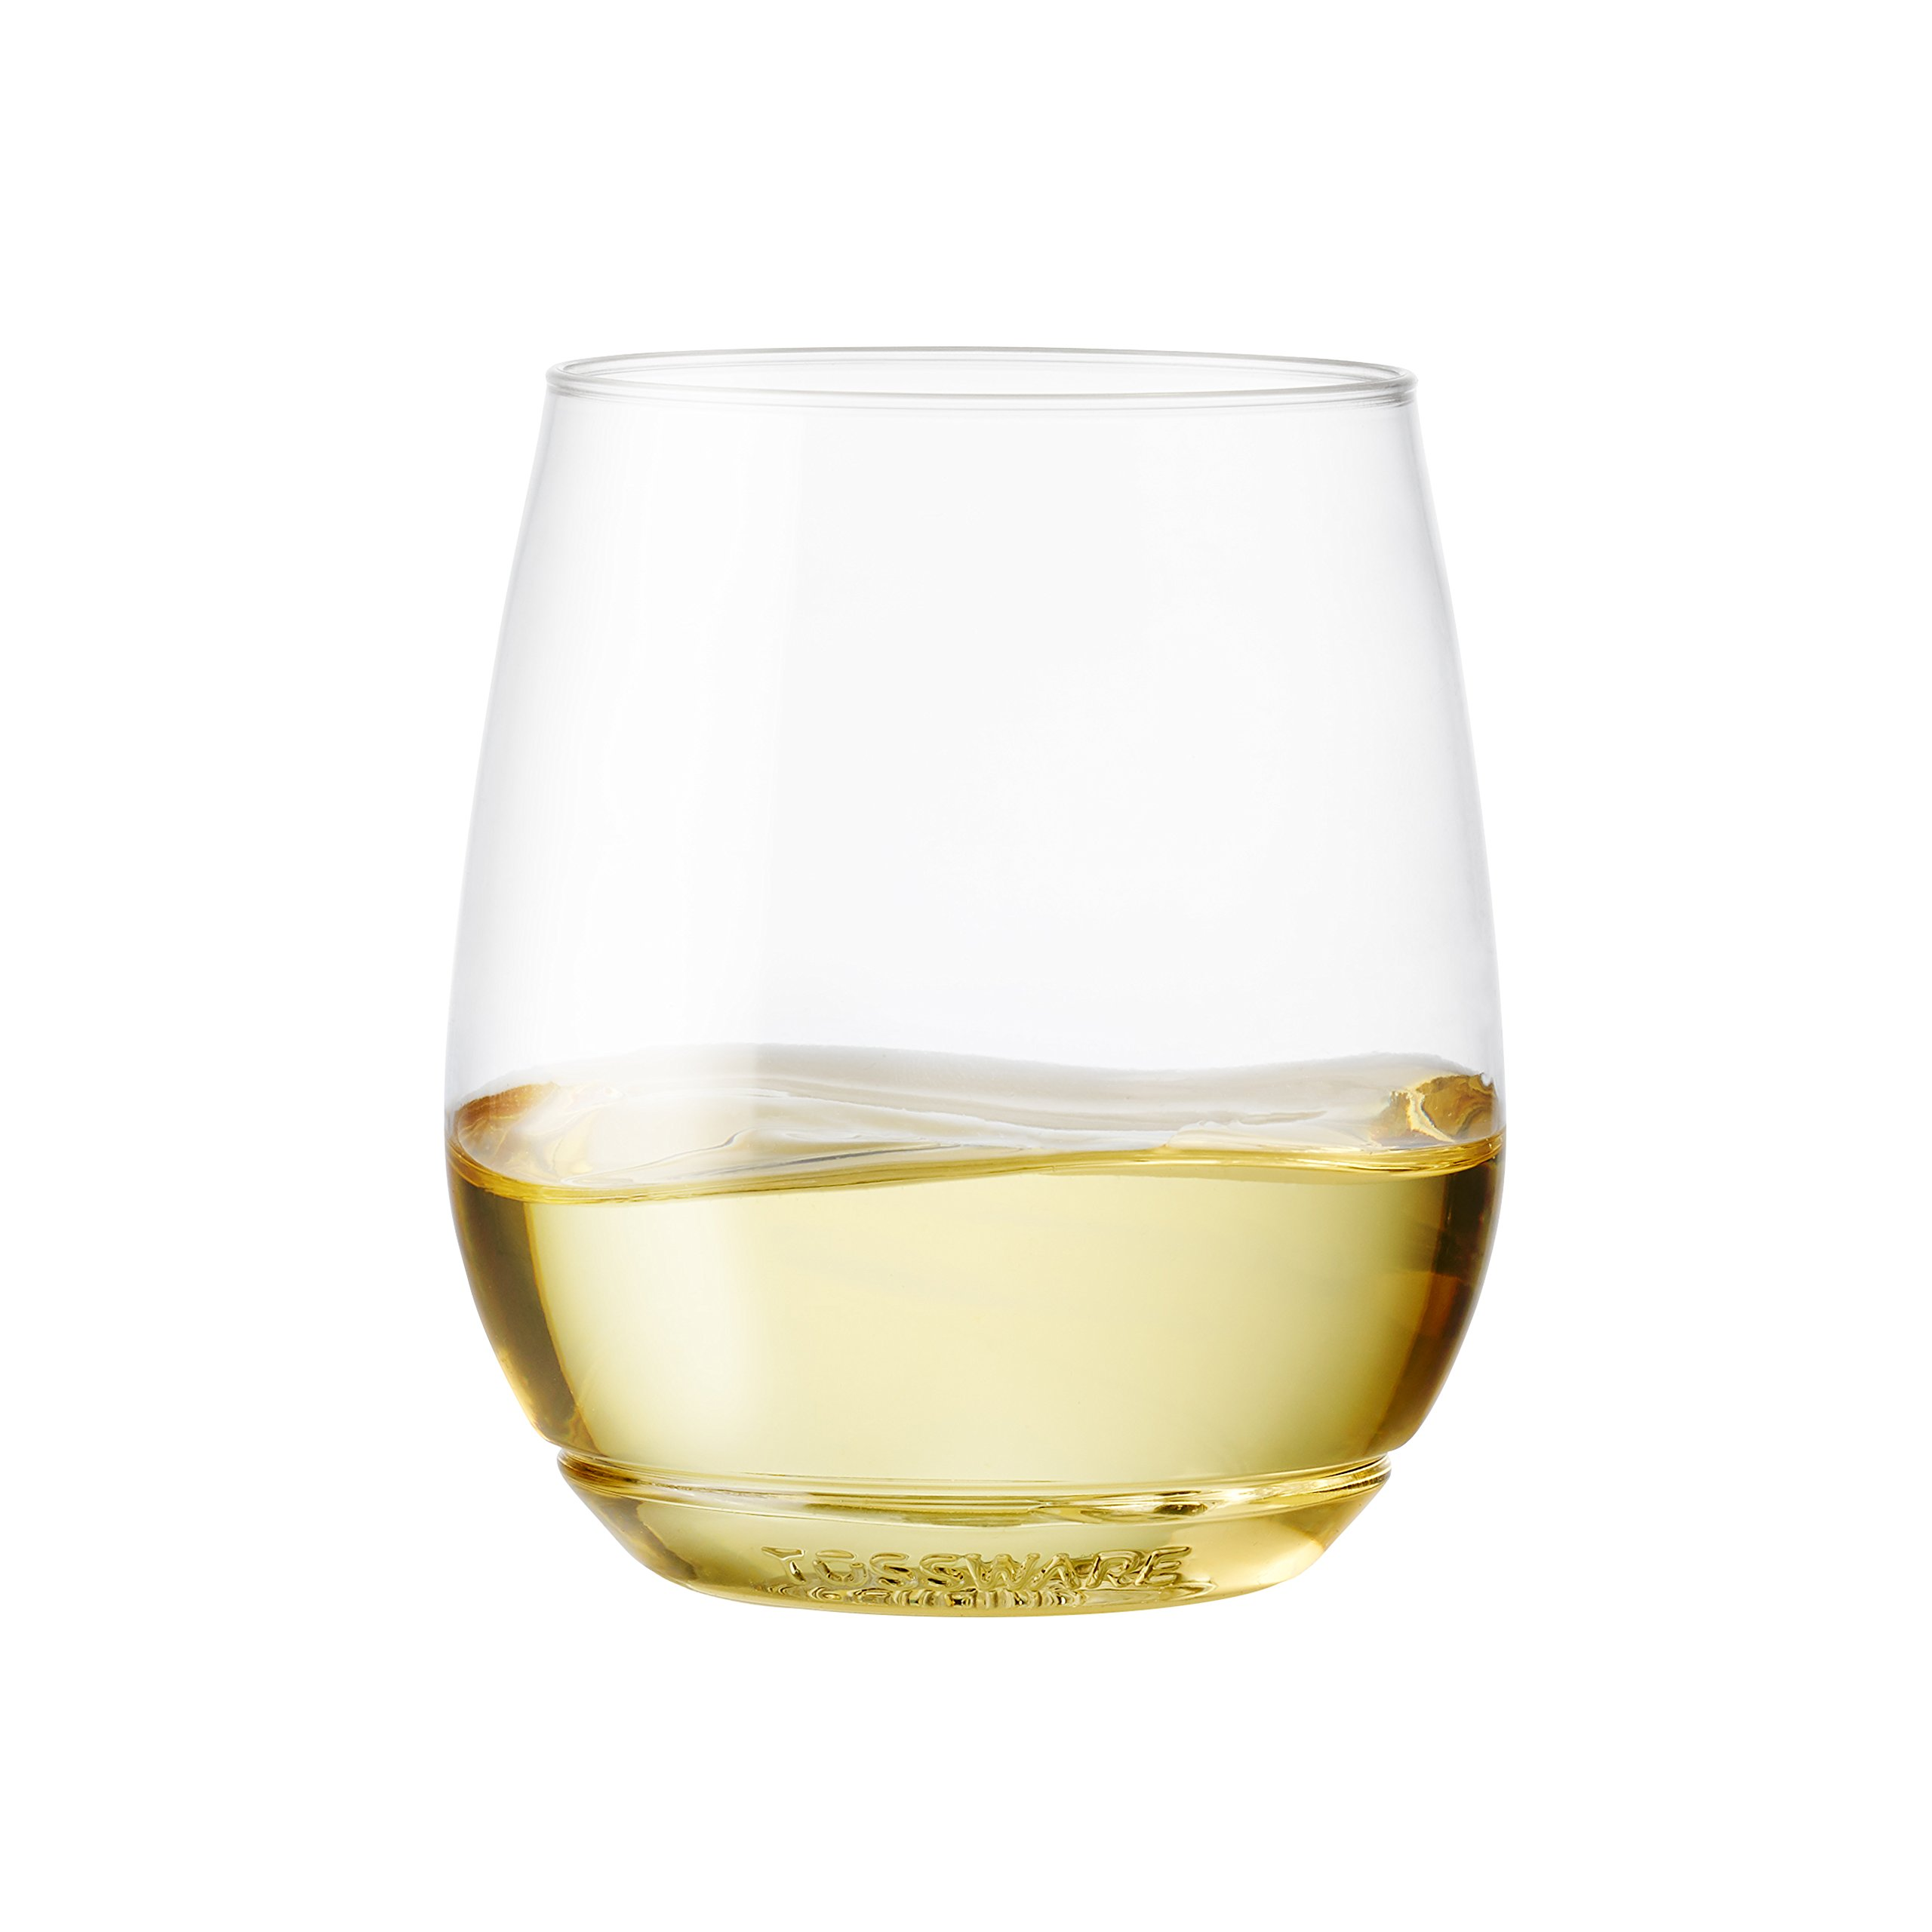 TOSSWARE 14oz Shatterproof Wine & Cocktail Glass, SET OF 12 BPA-FREE Upscale Recyclable/Disposable Plastic Wine Cups by TOSSWARE (Image #2)